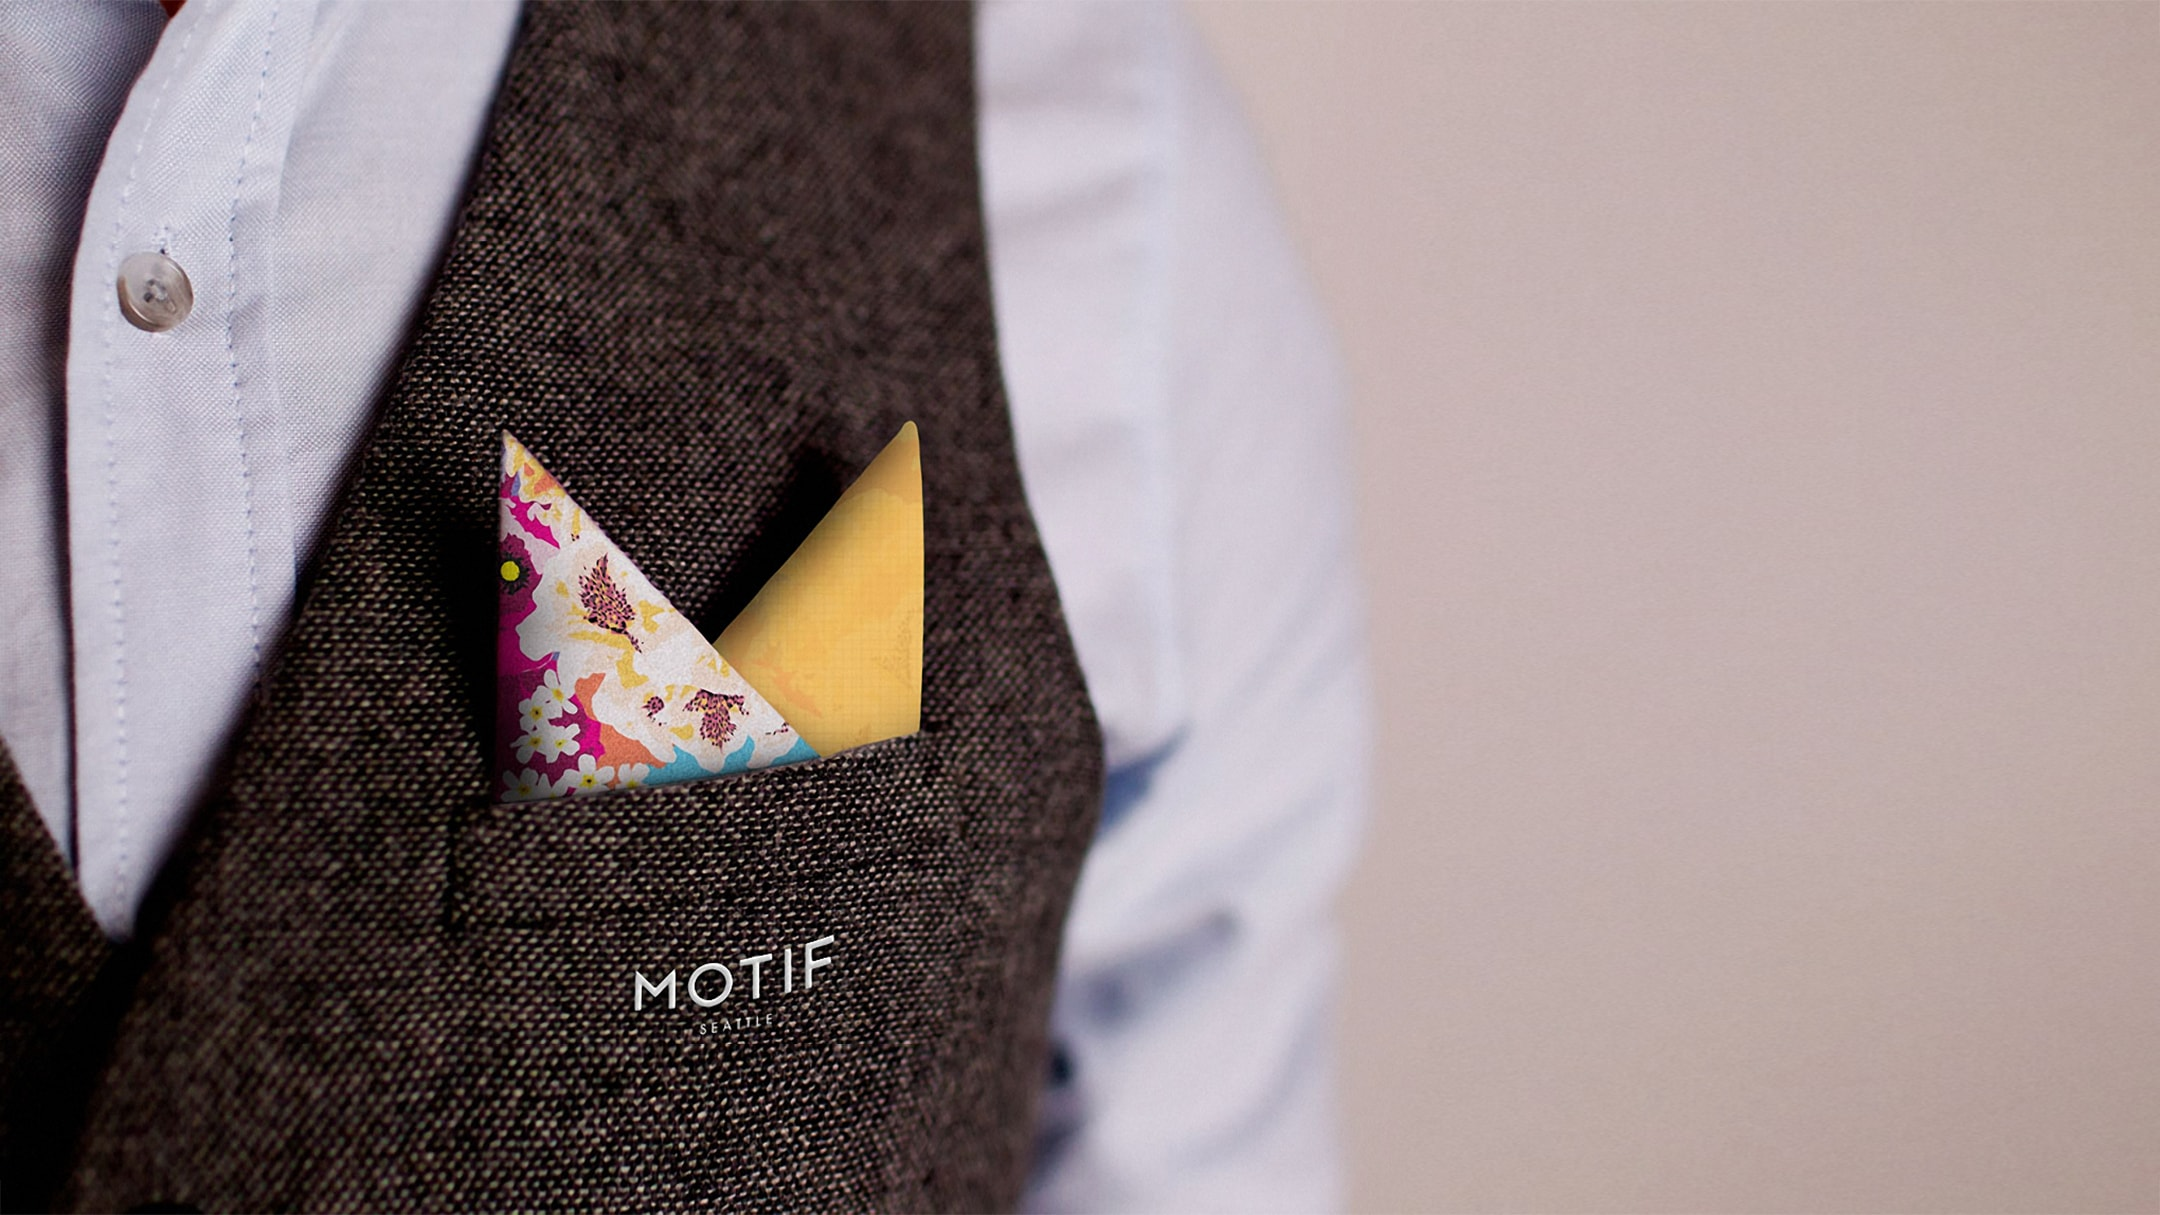 Motif Seattle pocket square - a hospitality branding element.